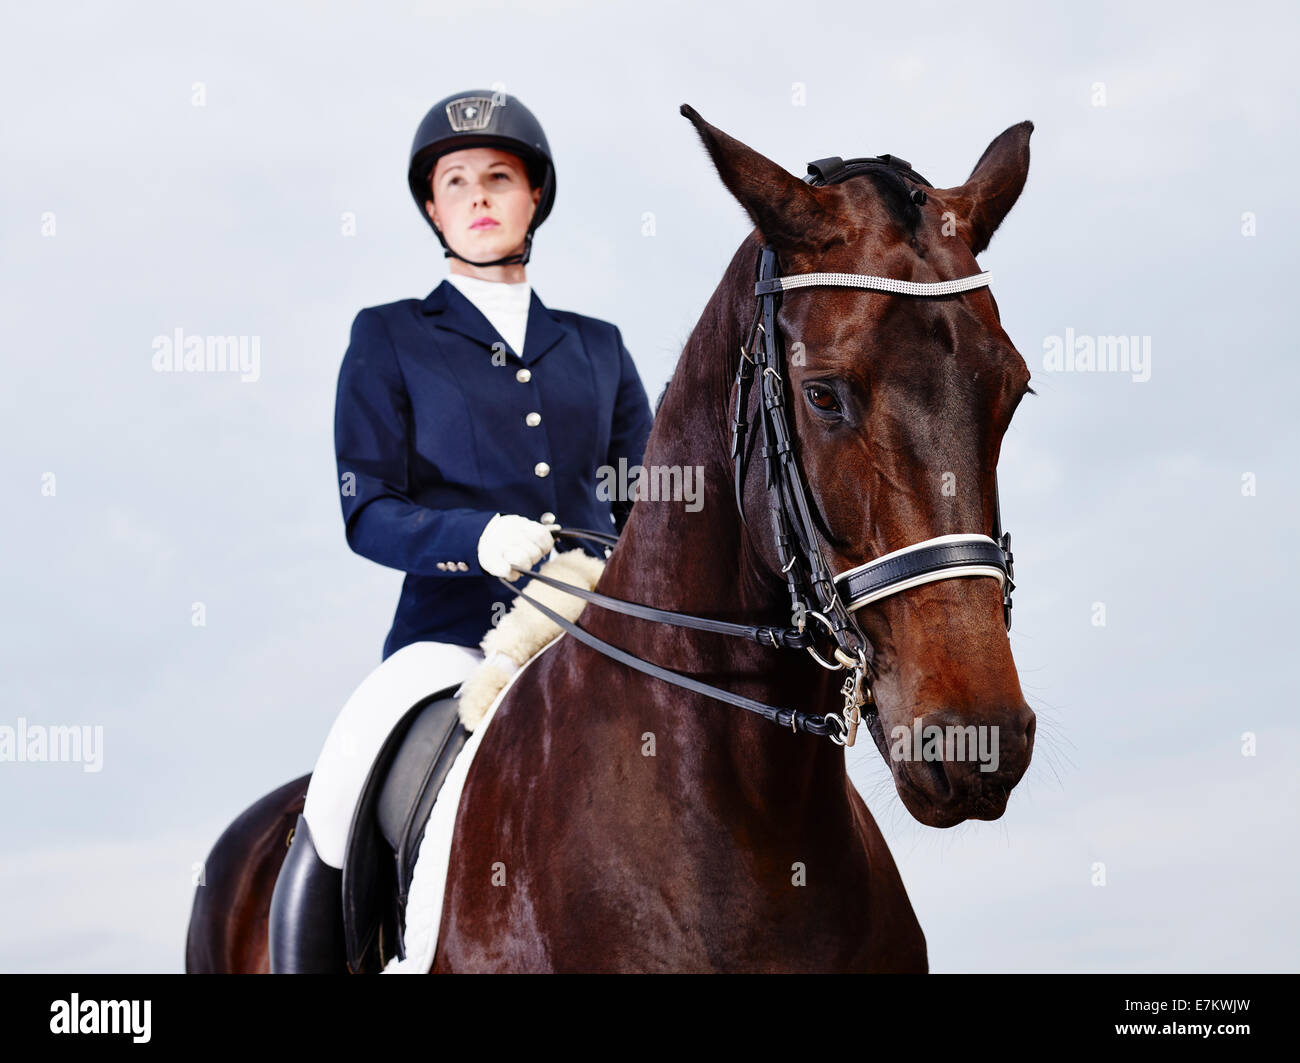 Brown horse and beautiful woman wearing horse riding apparel - focus on horse - Stock Image